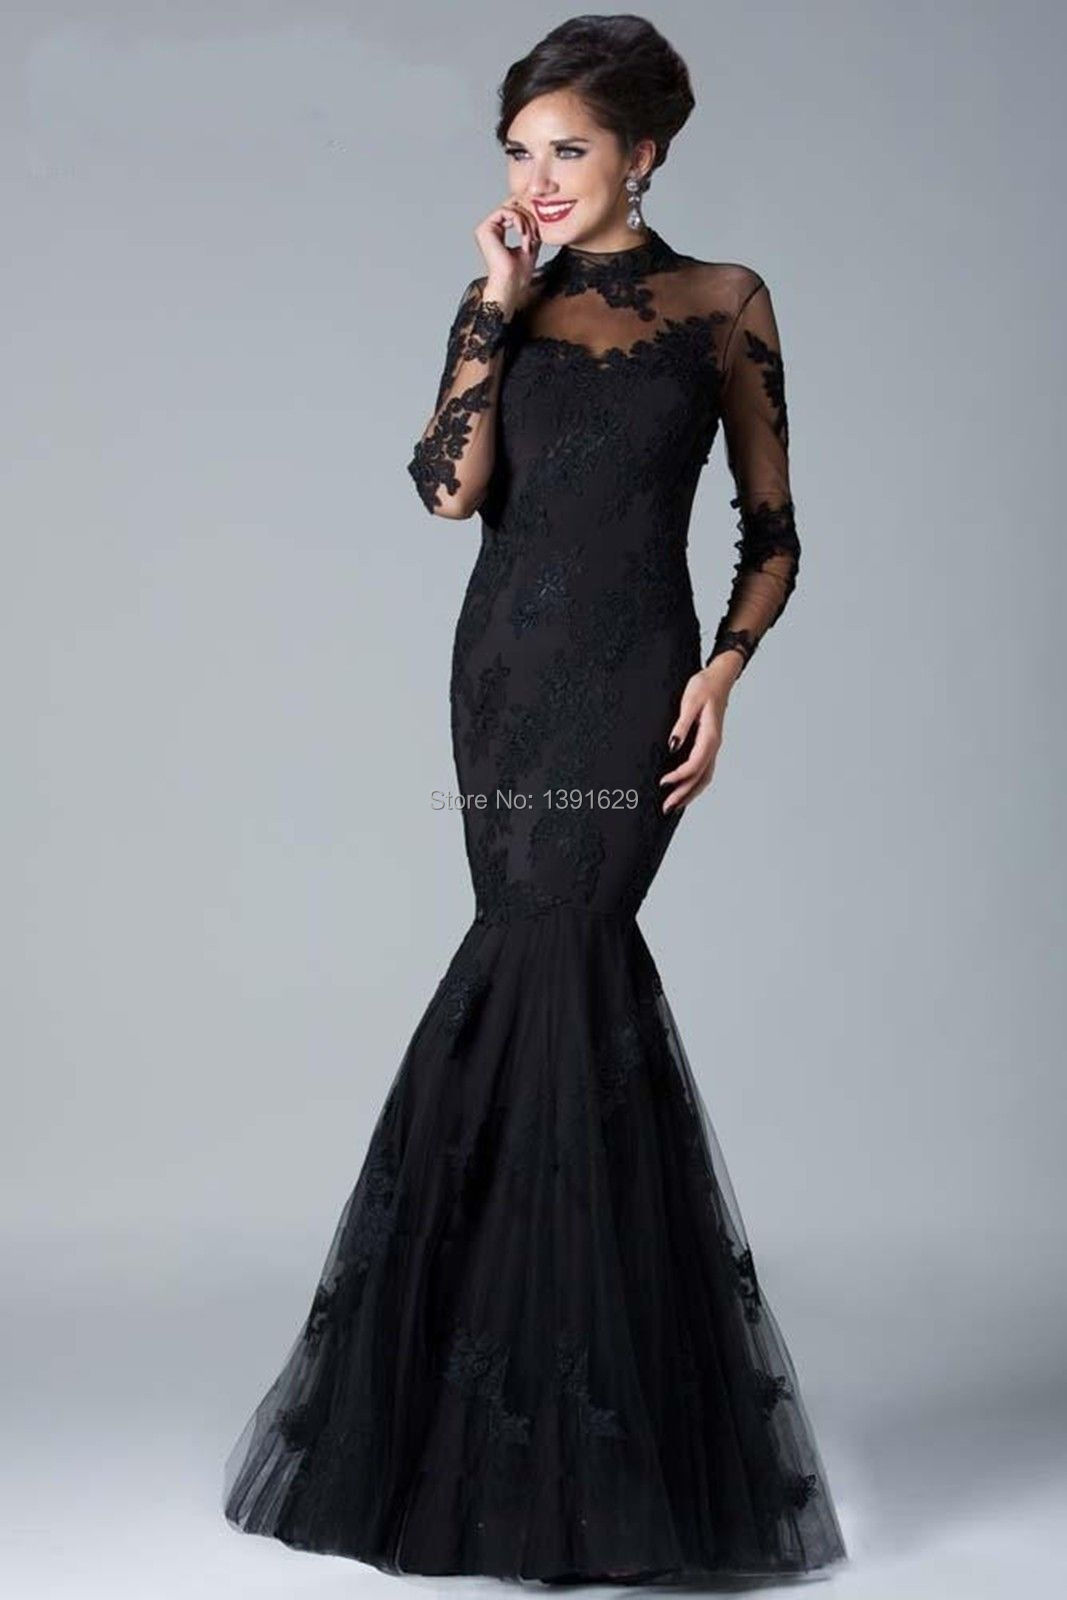 Awesome Black Long Sleeve Party Dress Frieze - All Wedding Dresses ...